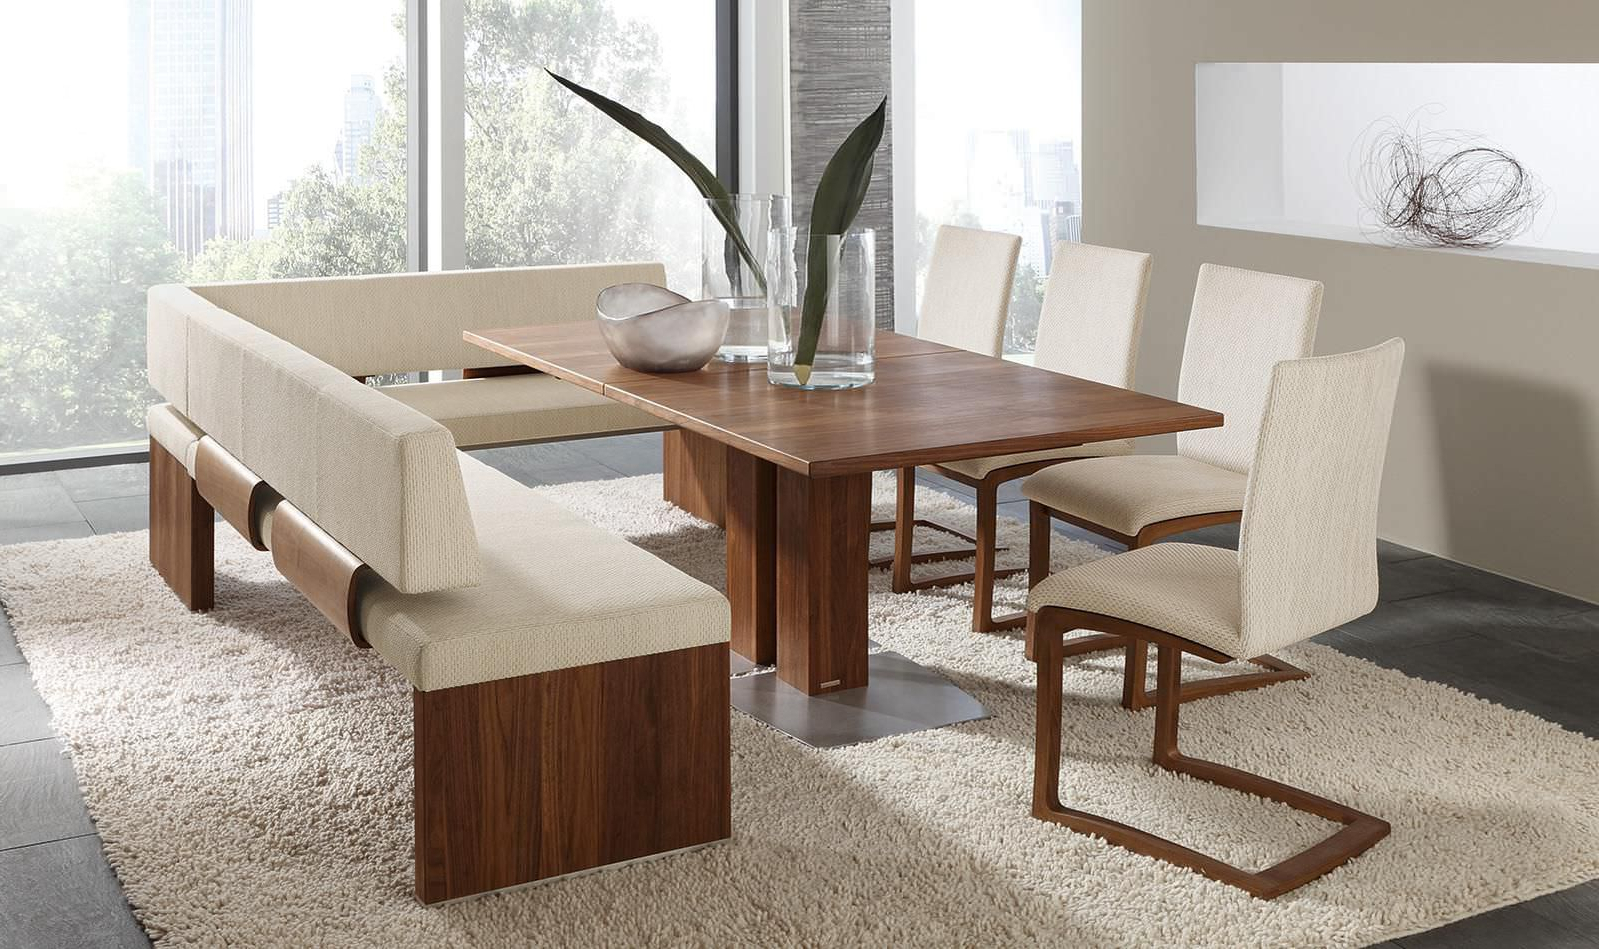 Most Current Contemporary Dining Table / Wooden / Rectangular – Et364 Regarding Contemporary 4 Seating Oblong Dining Tables (View 3 of 25)